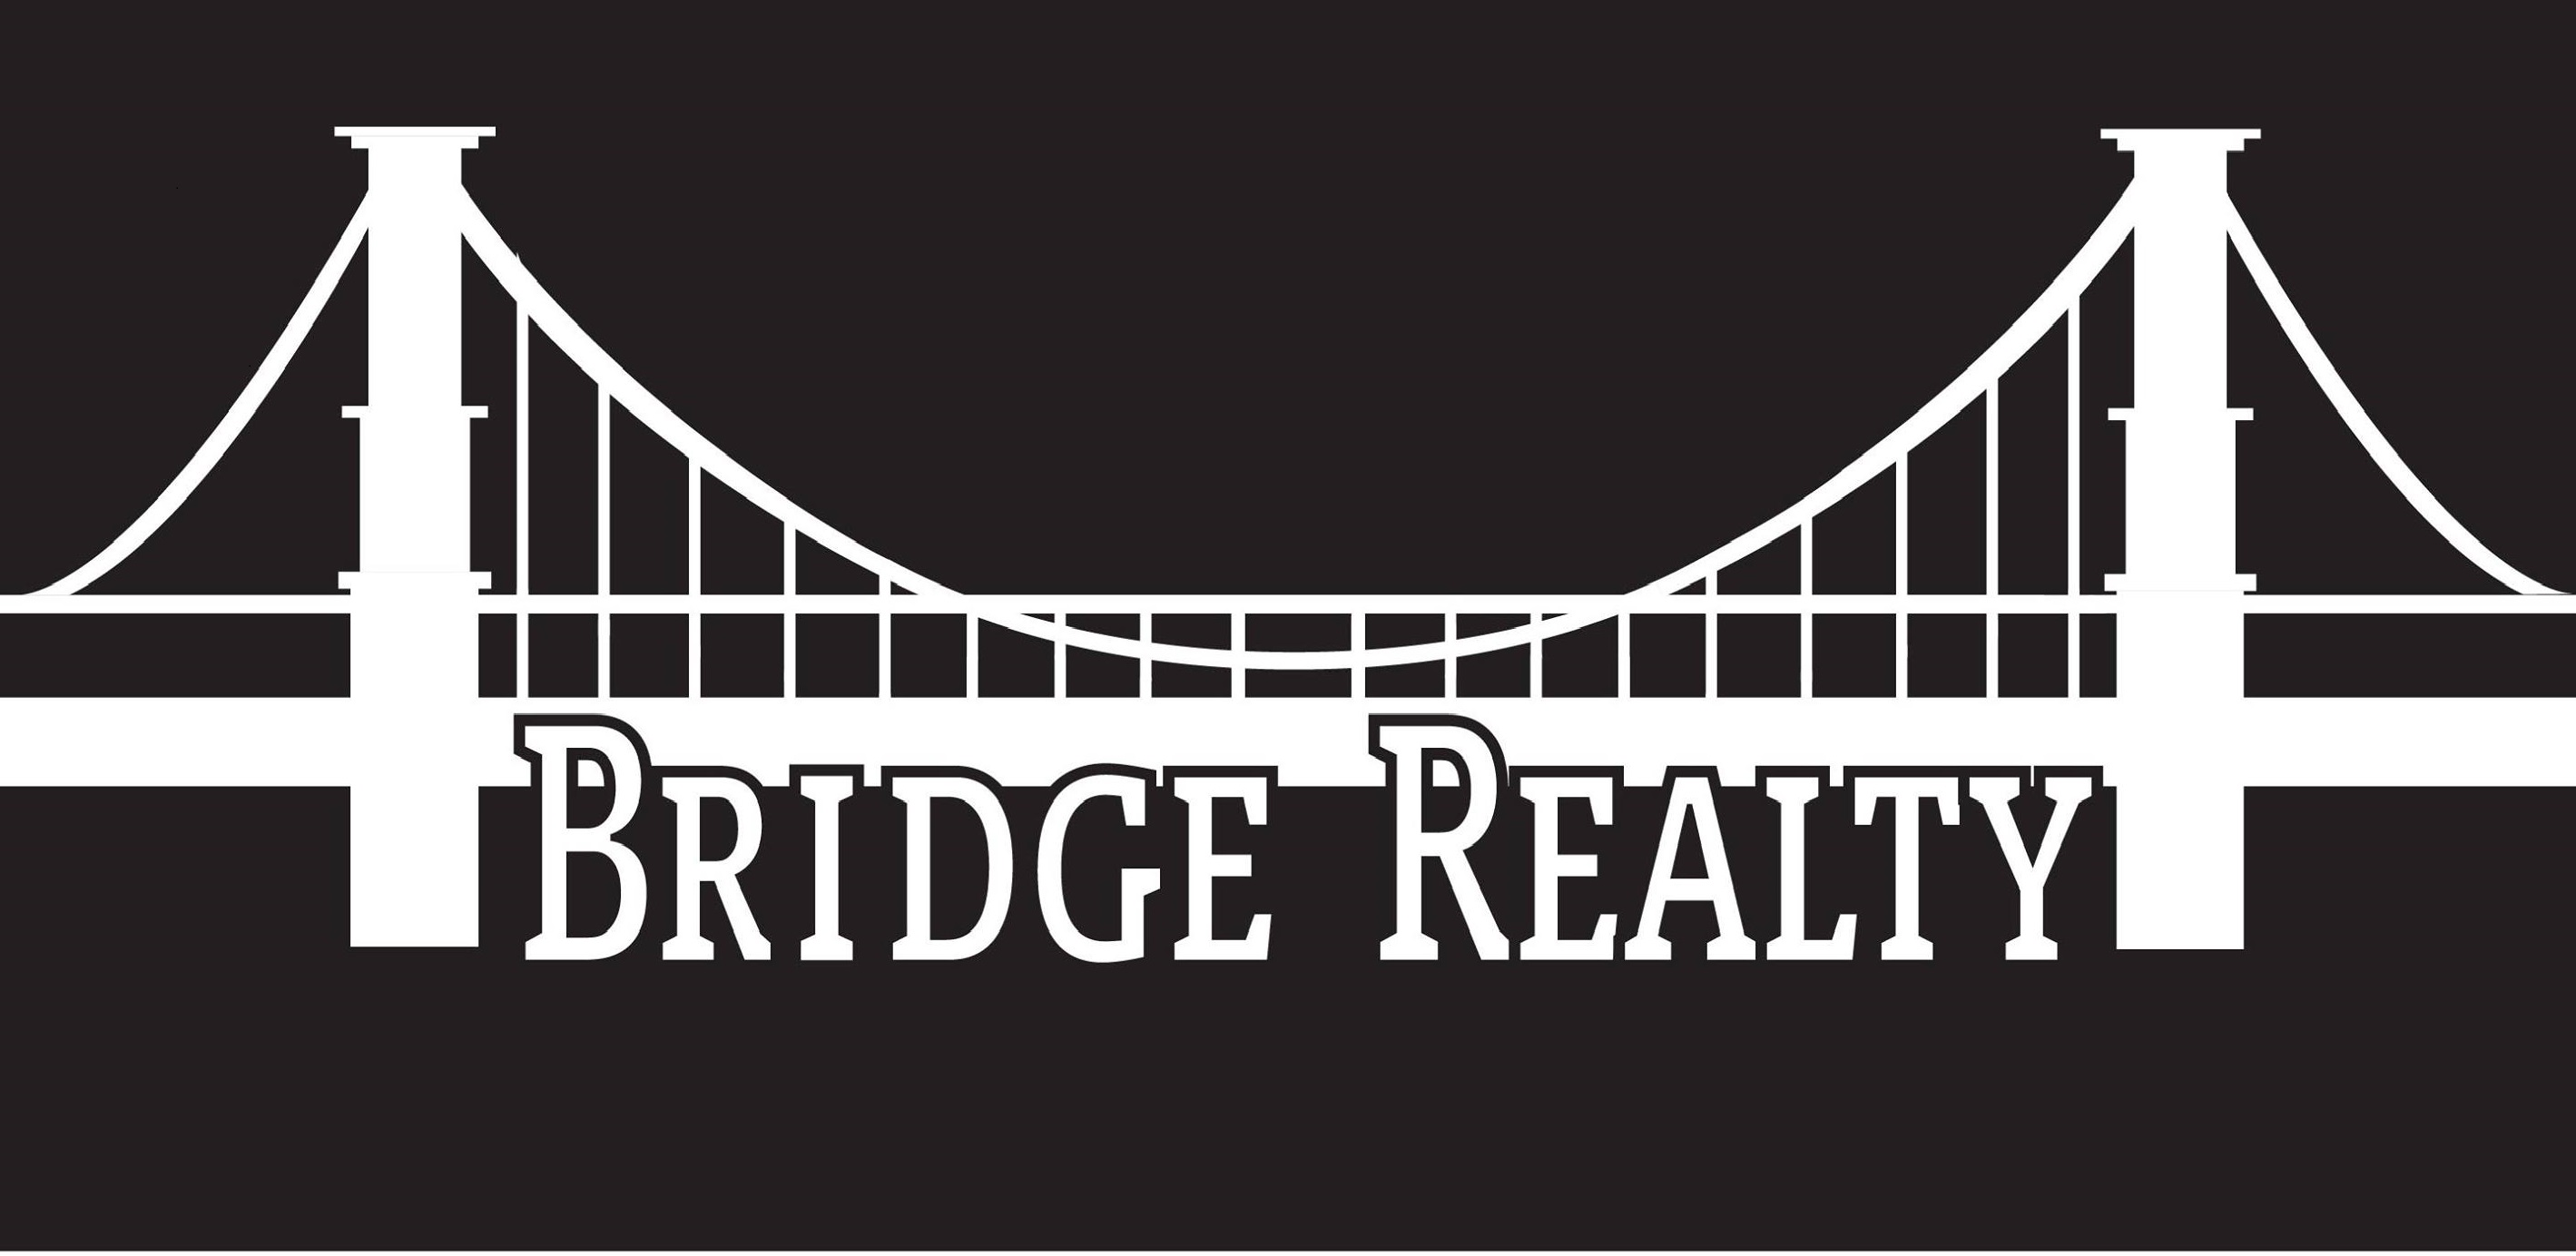 Brad Wetzel, REALTOR  - Bridge Realty - Waco, TX